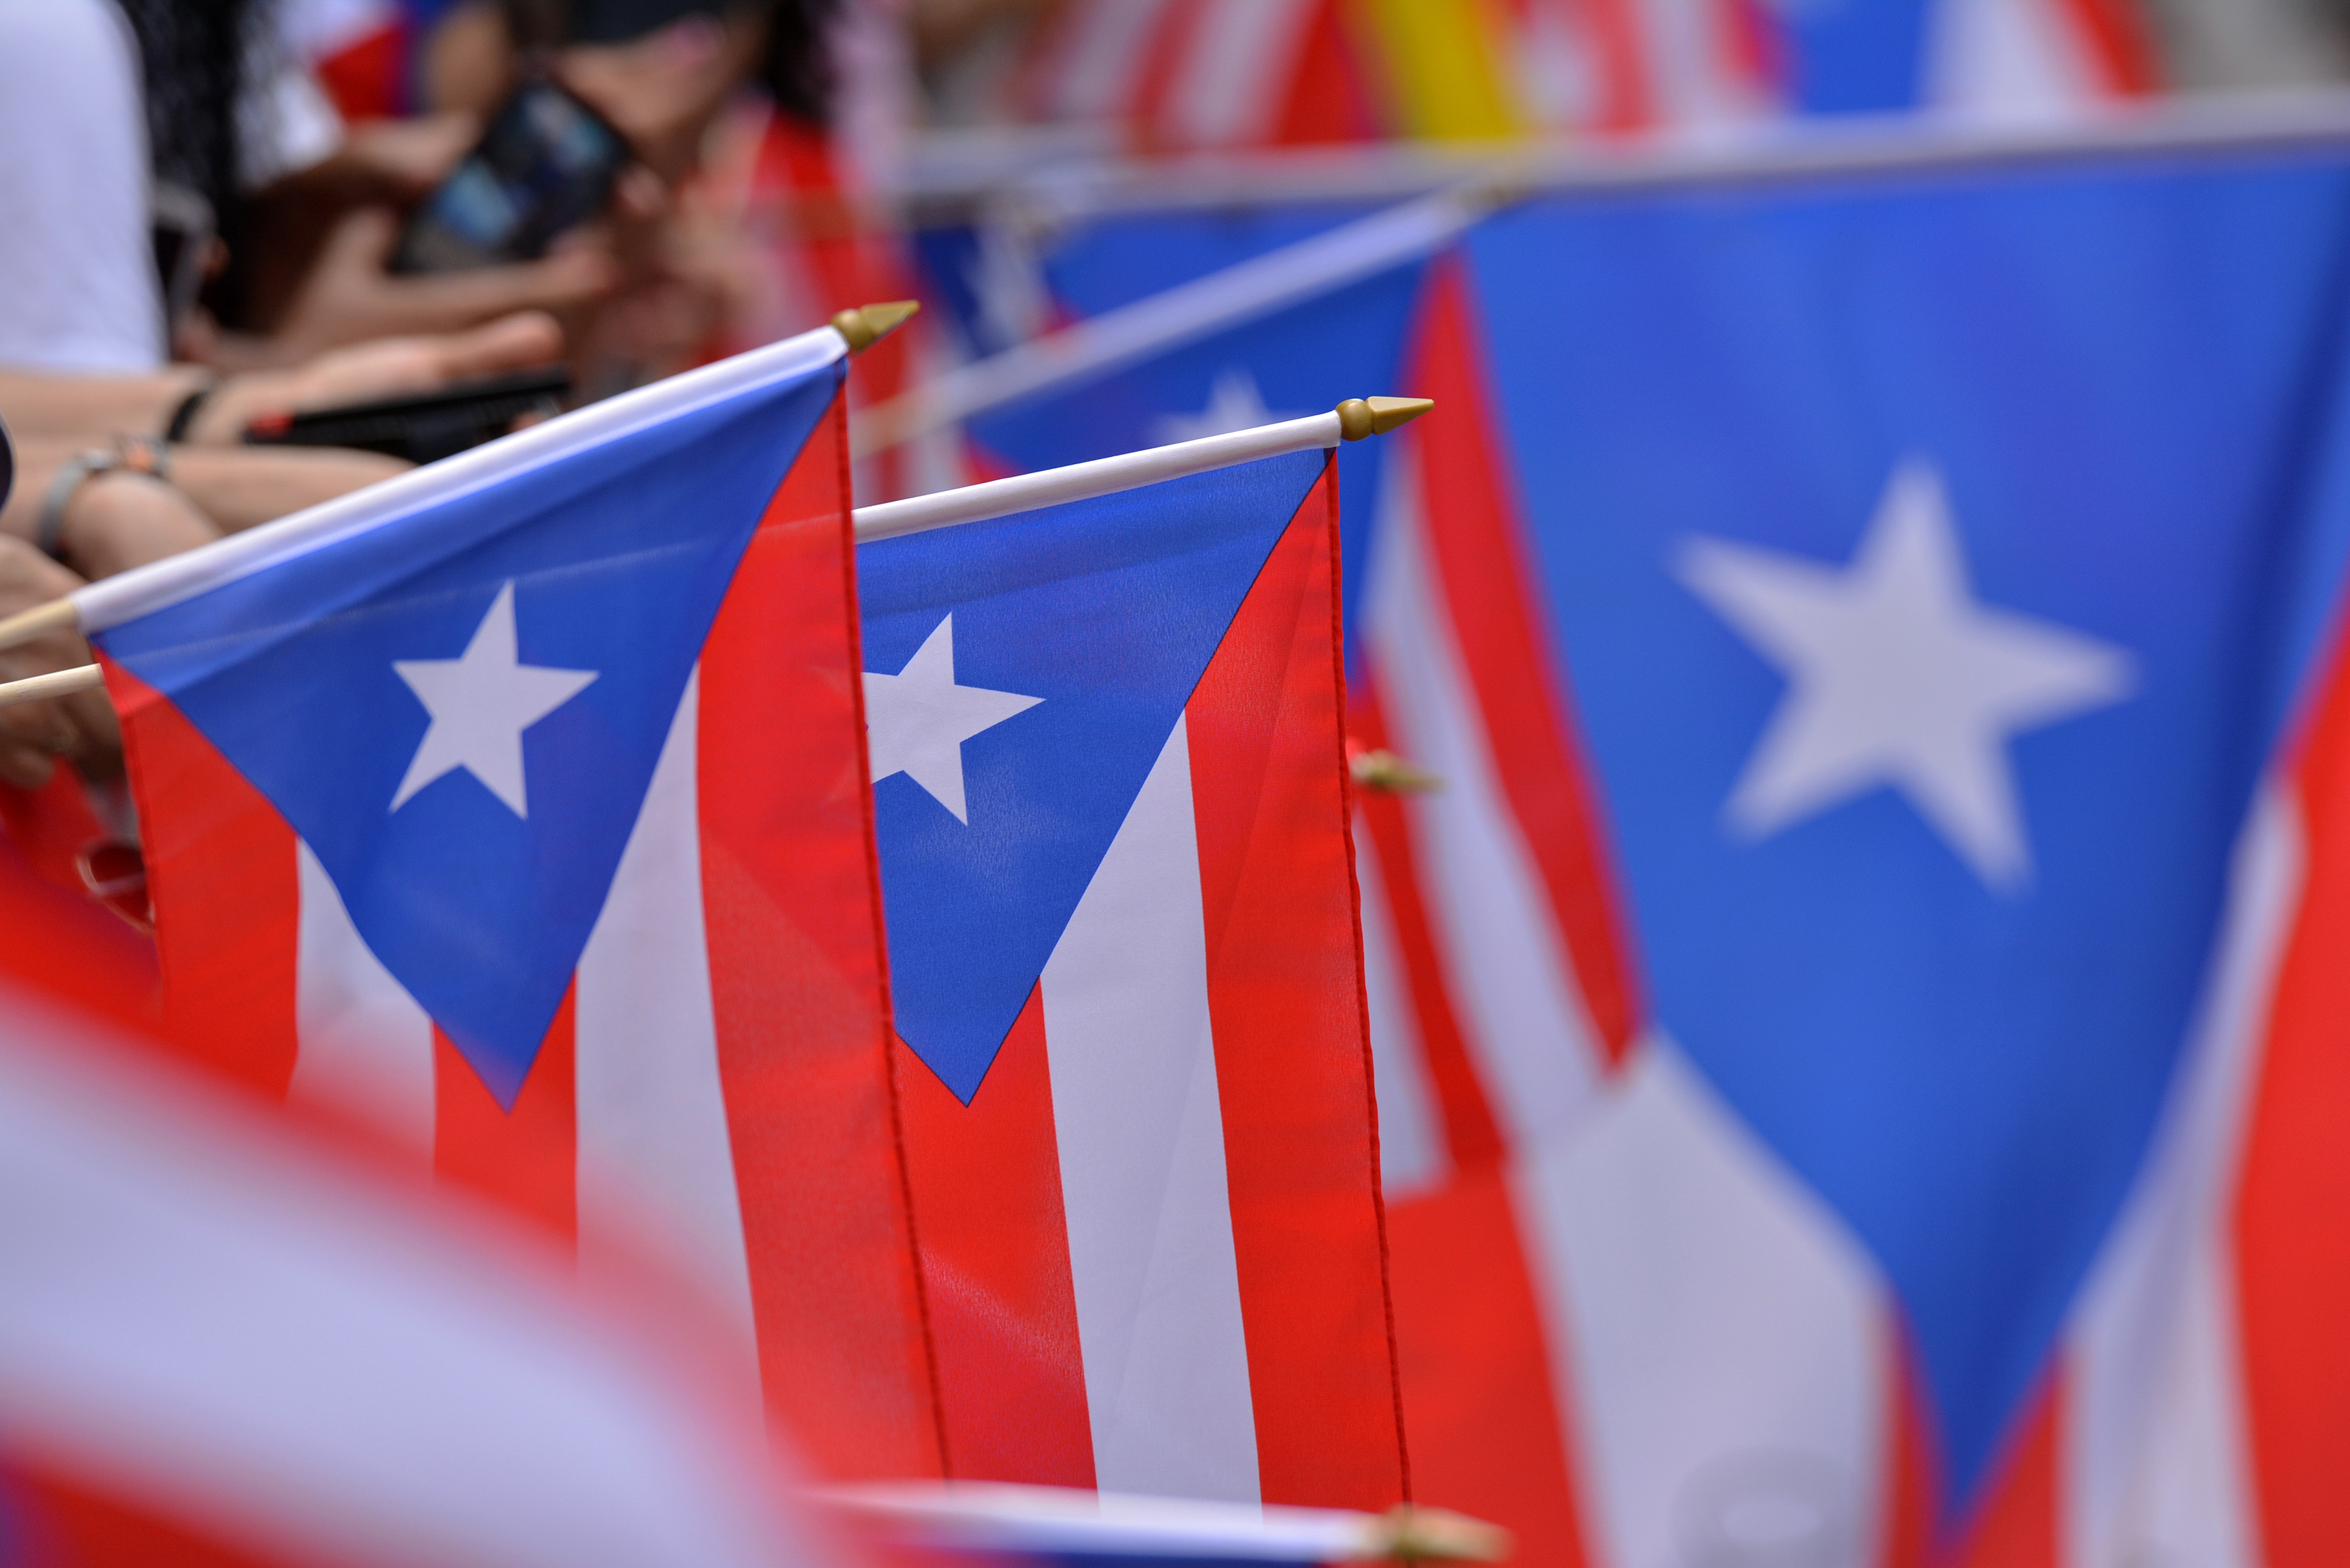 Scholars of Religion and Theologians in Solidarity with the People of Puerto Rico